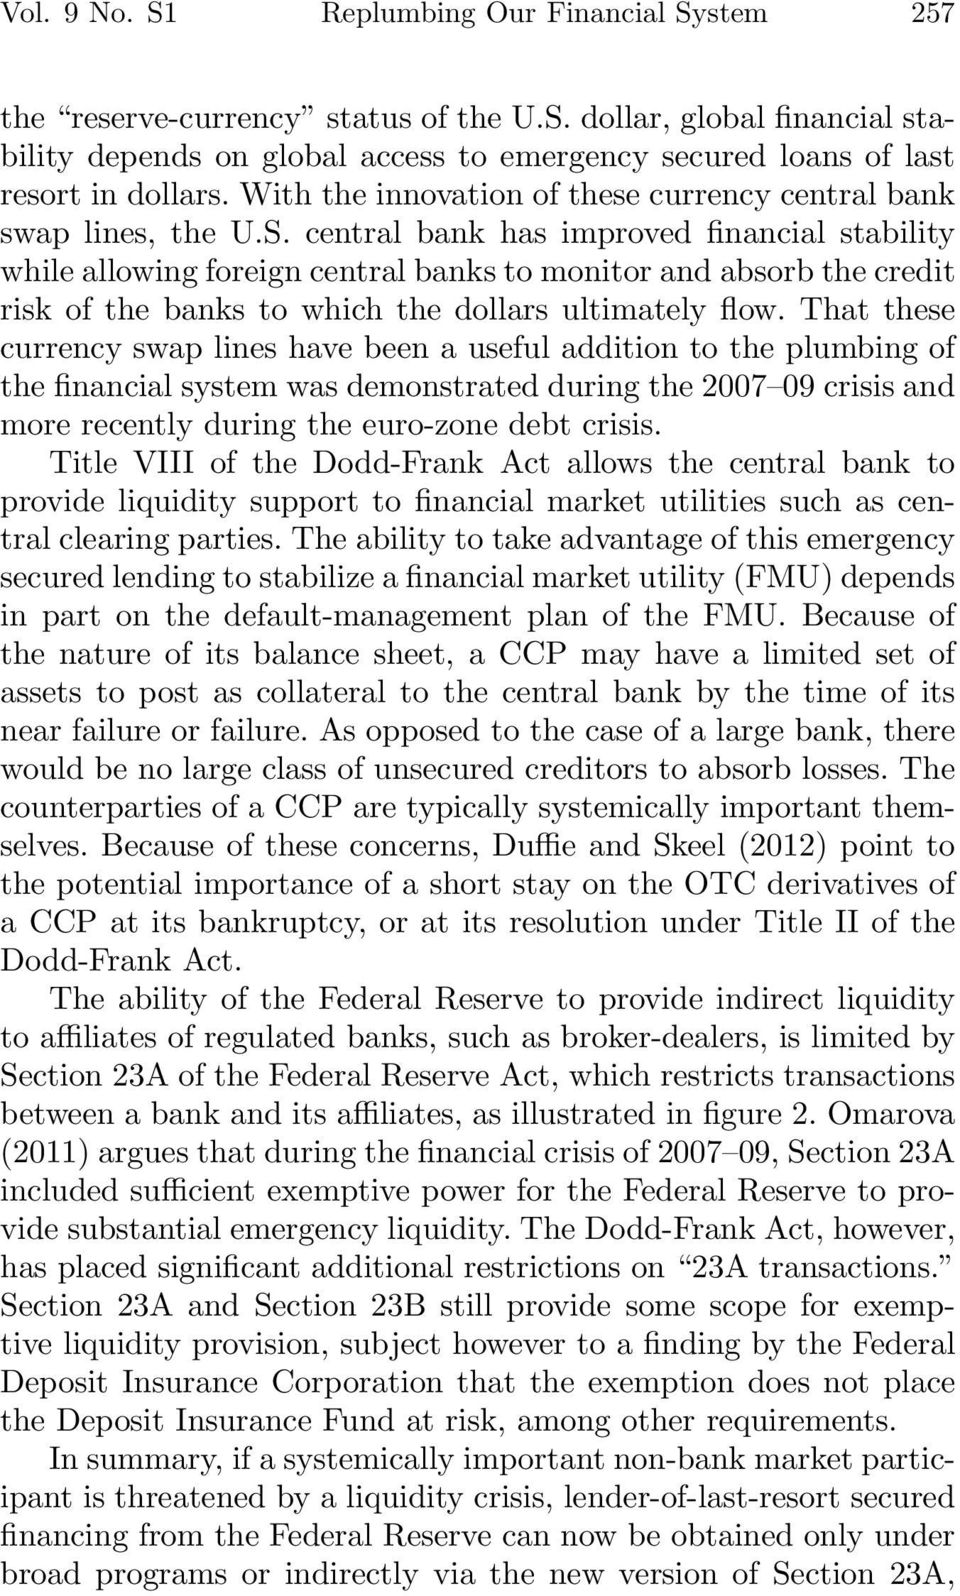 central bank has improved financial stability while allowing foreign central banks to monitor and absorb the credit risk of the banks to which the dollars ultimately flow.